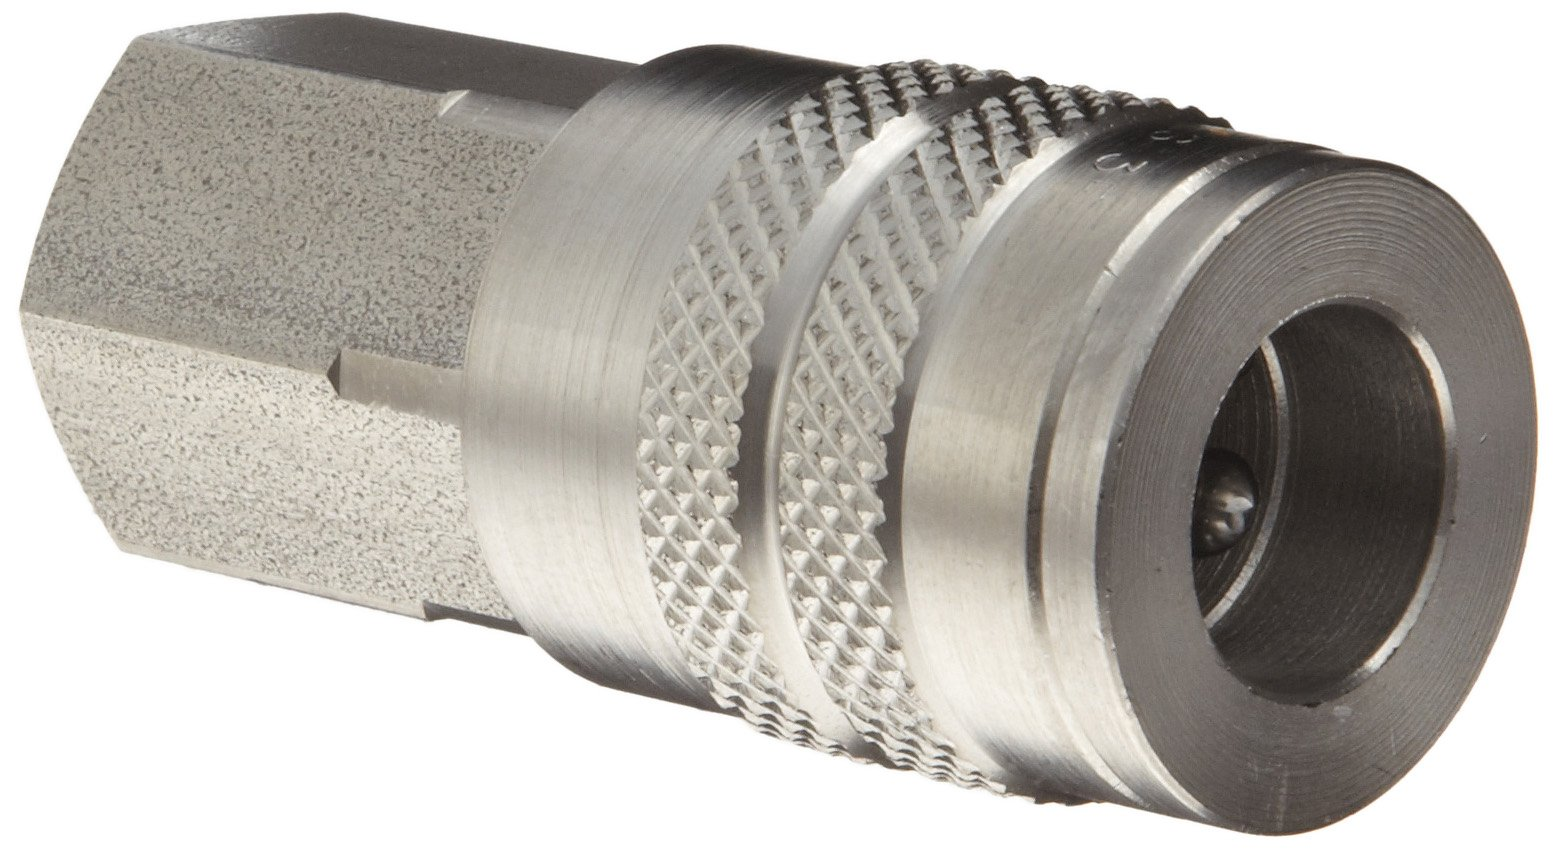 Dixon DC26S Stainless Steel 303 Air Chief Industrial Interchange Quick-Connect Hose Fitting, 3/8'' Coupling x 3/8'' NPT Female